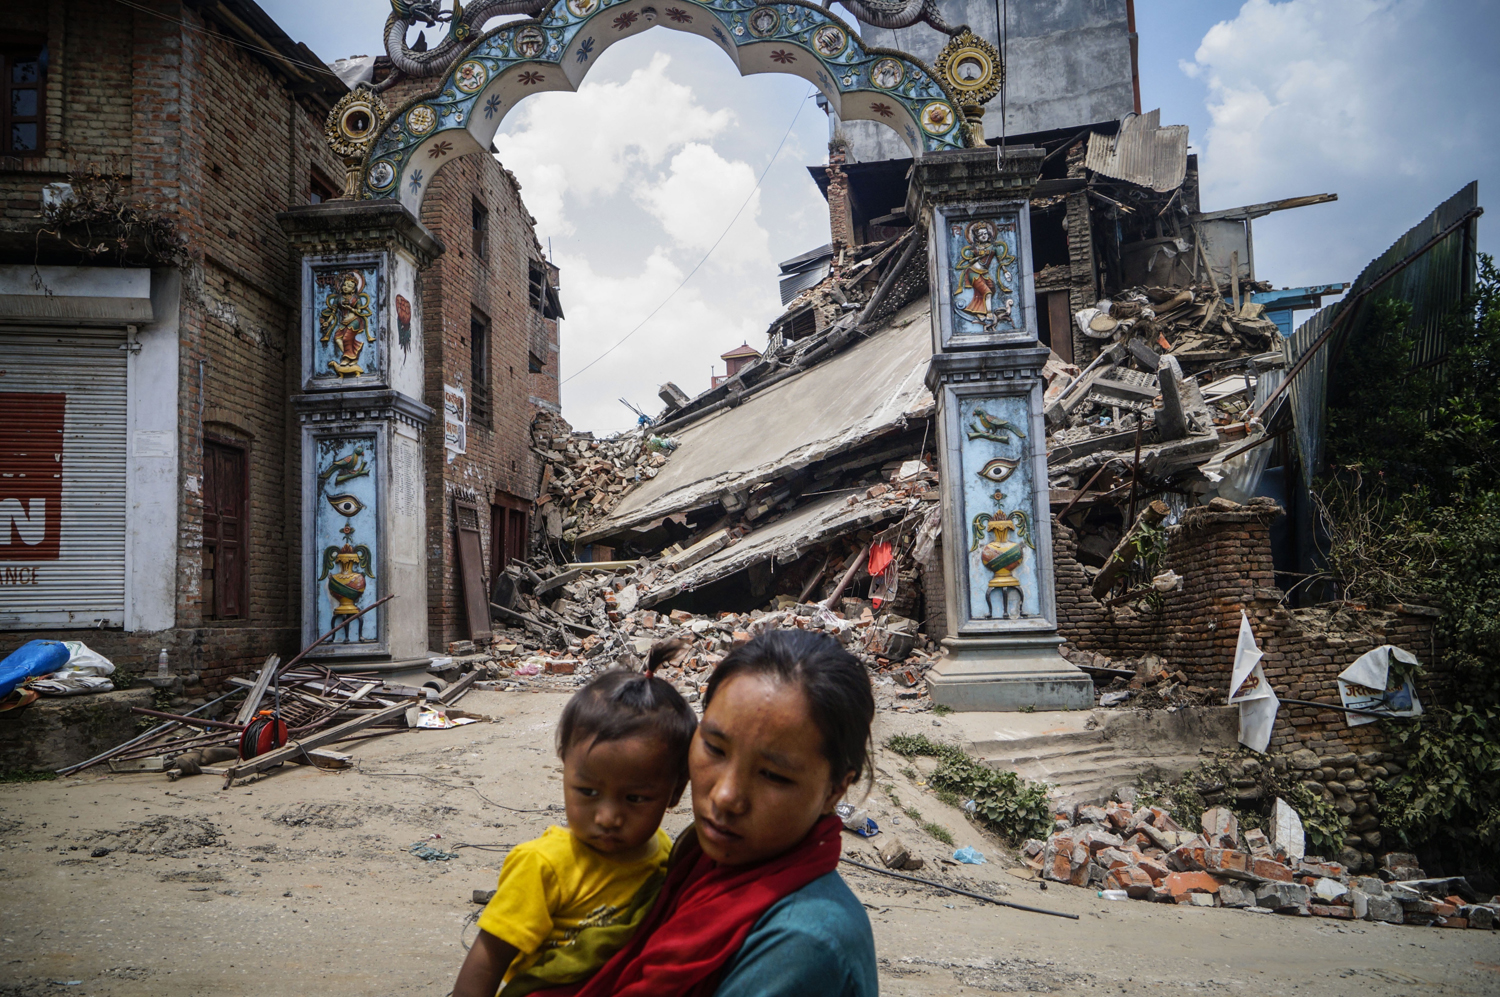 A Nepalese woman carrying her child walks past a destroyed building in Sankhu village in Kathmandu, Nepal on May 16, 2015.